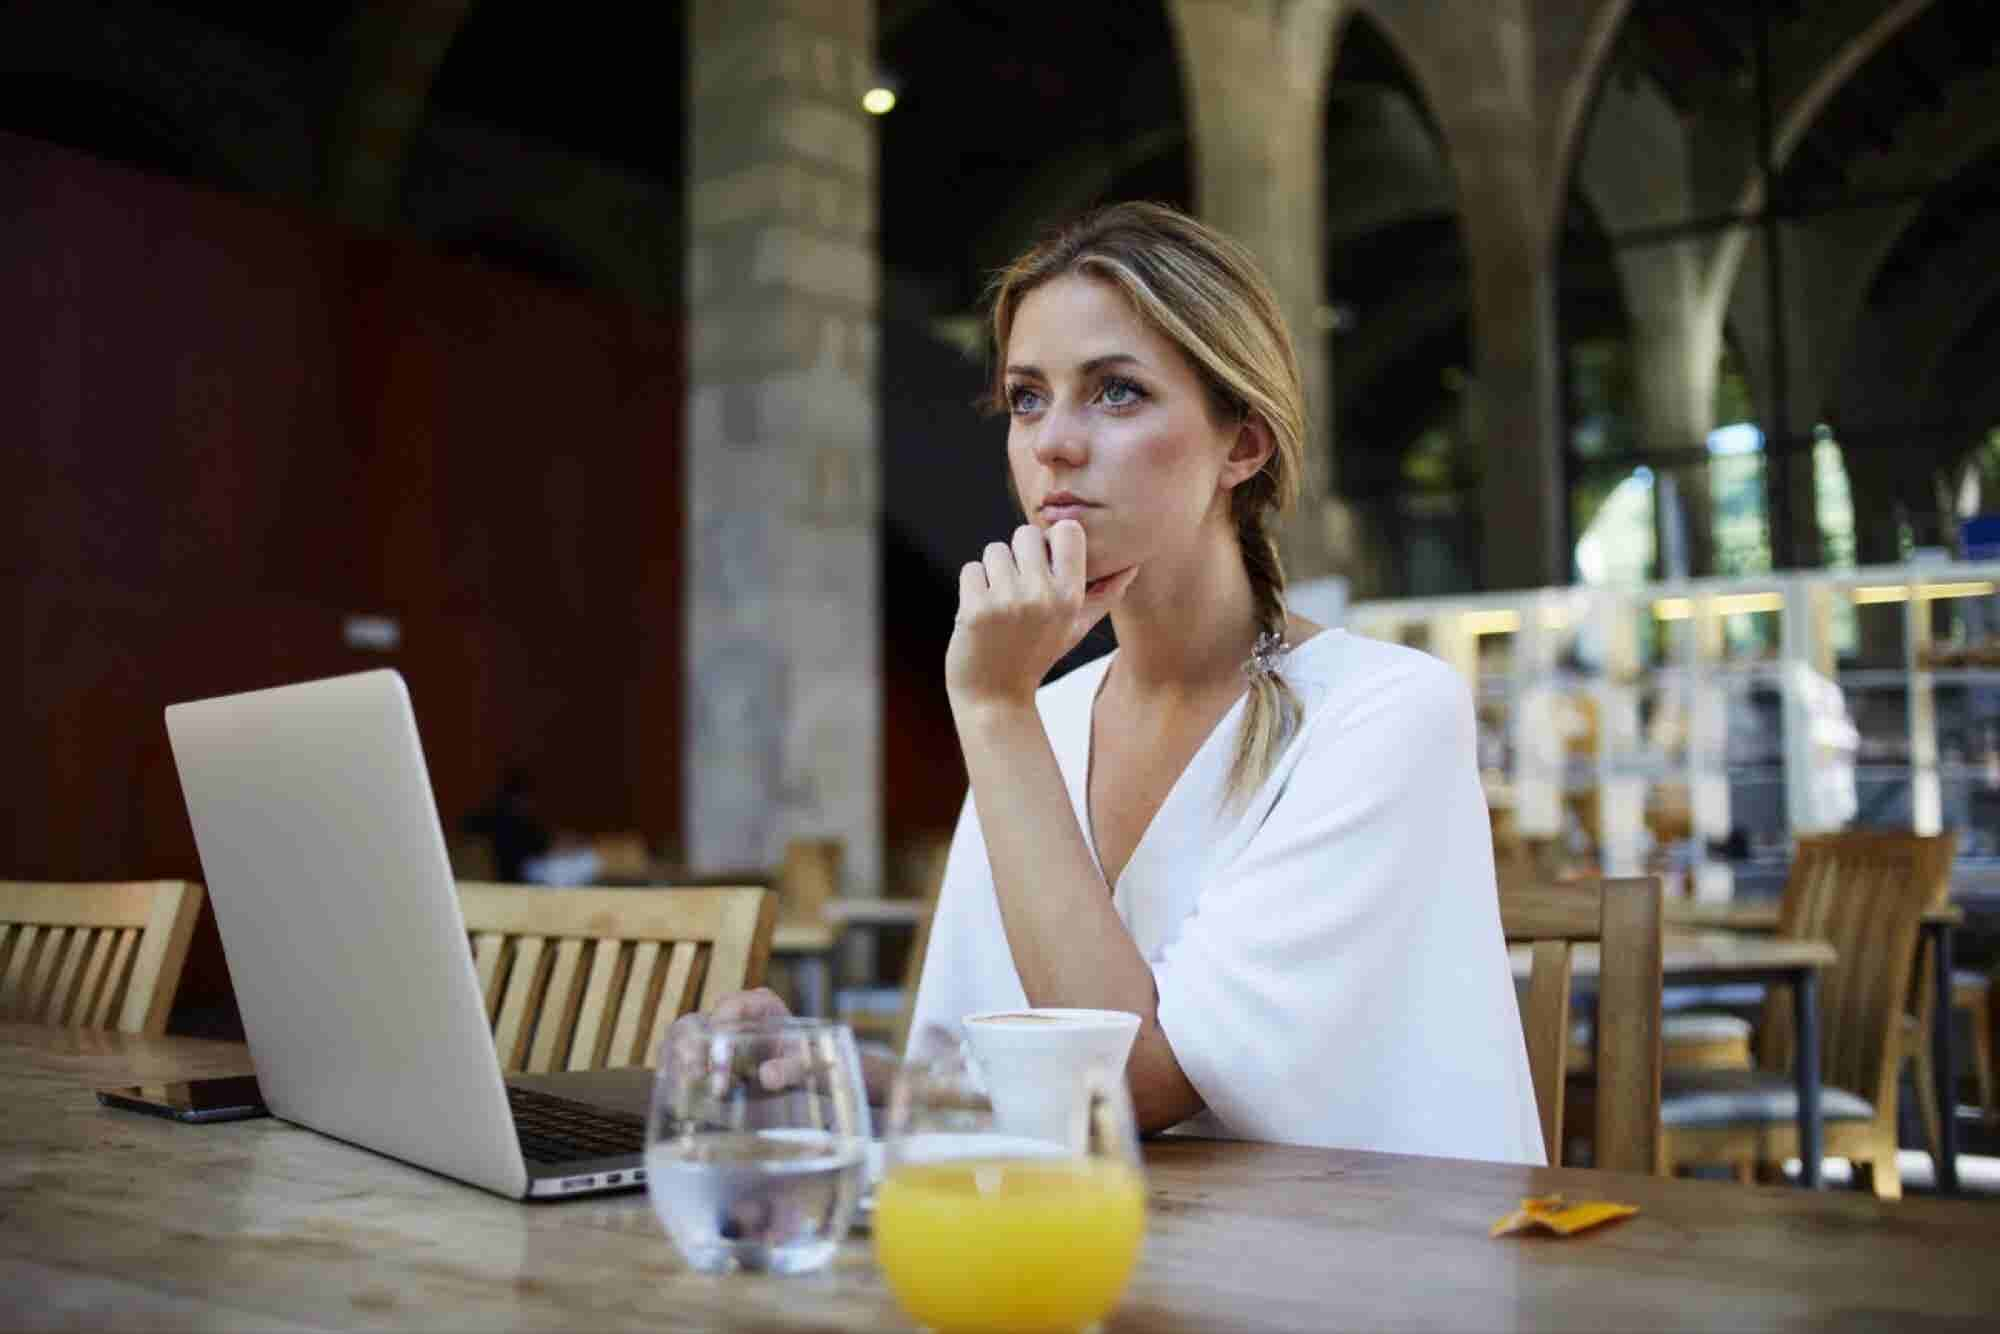 Five Reasons Why the Future of Work Lies in Freelancing